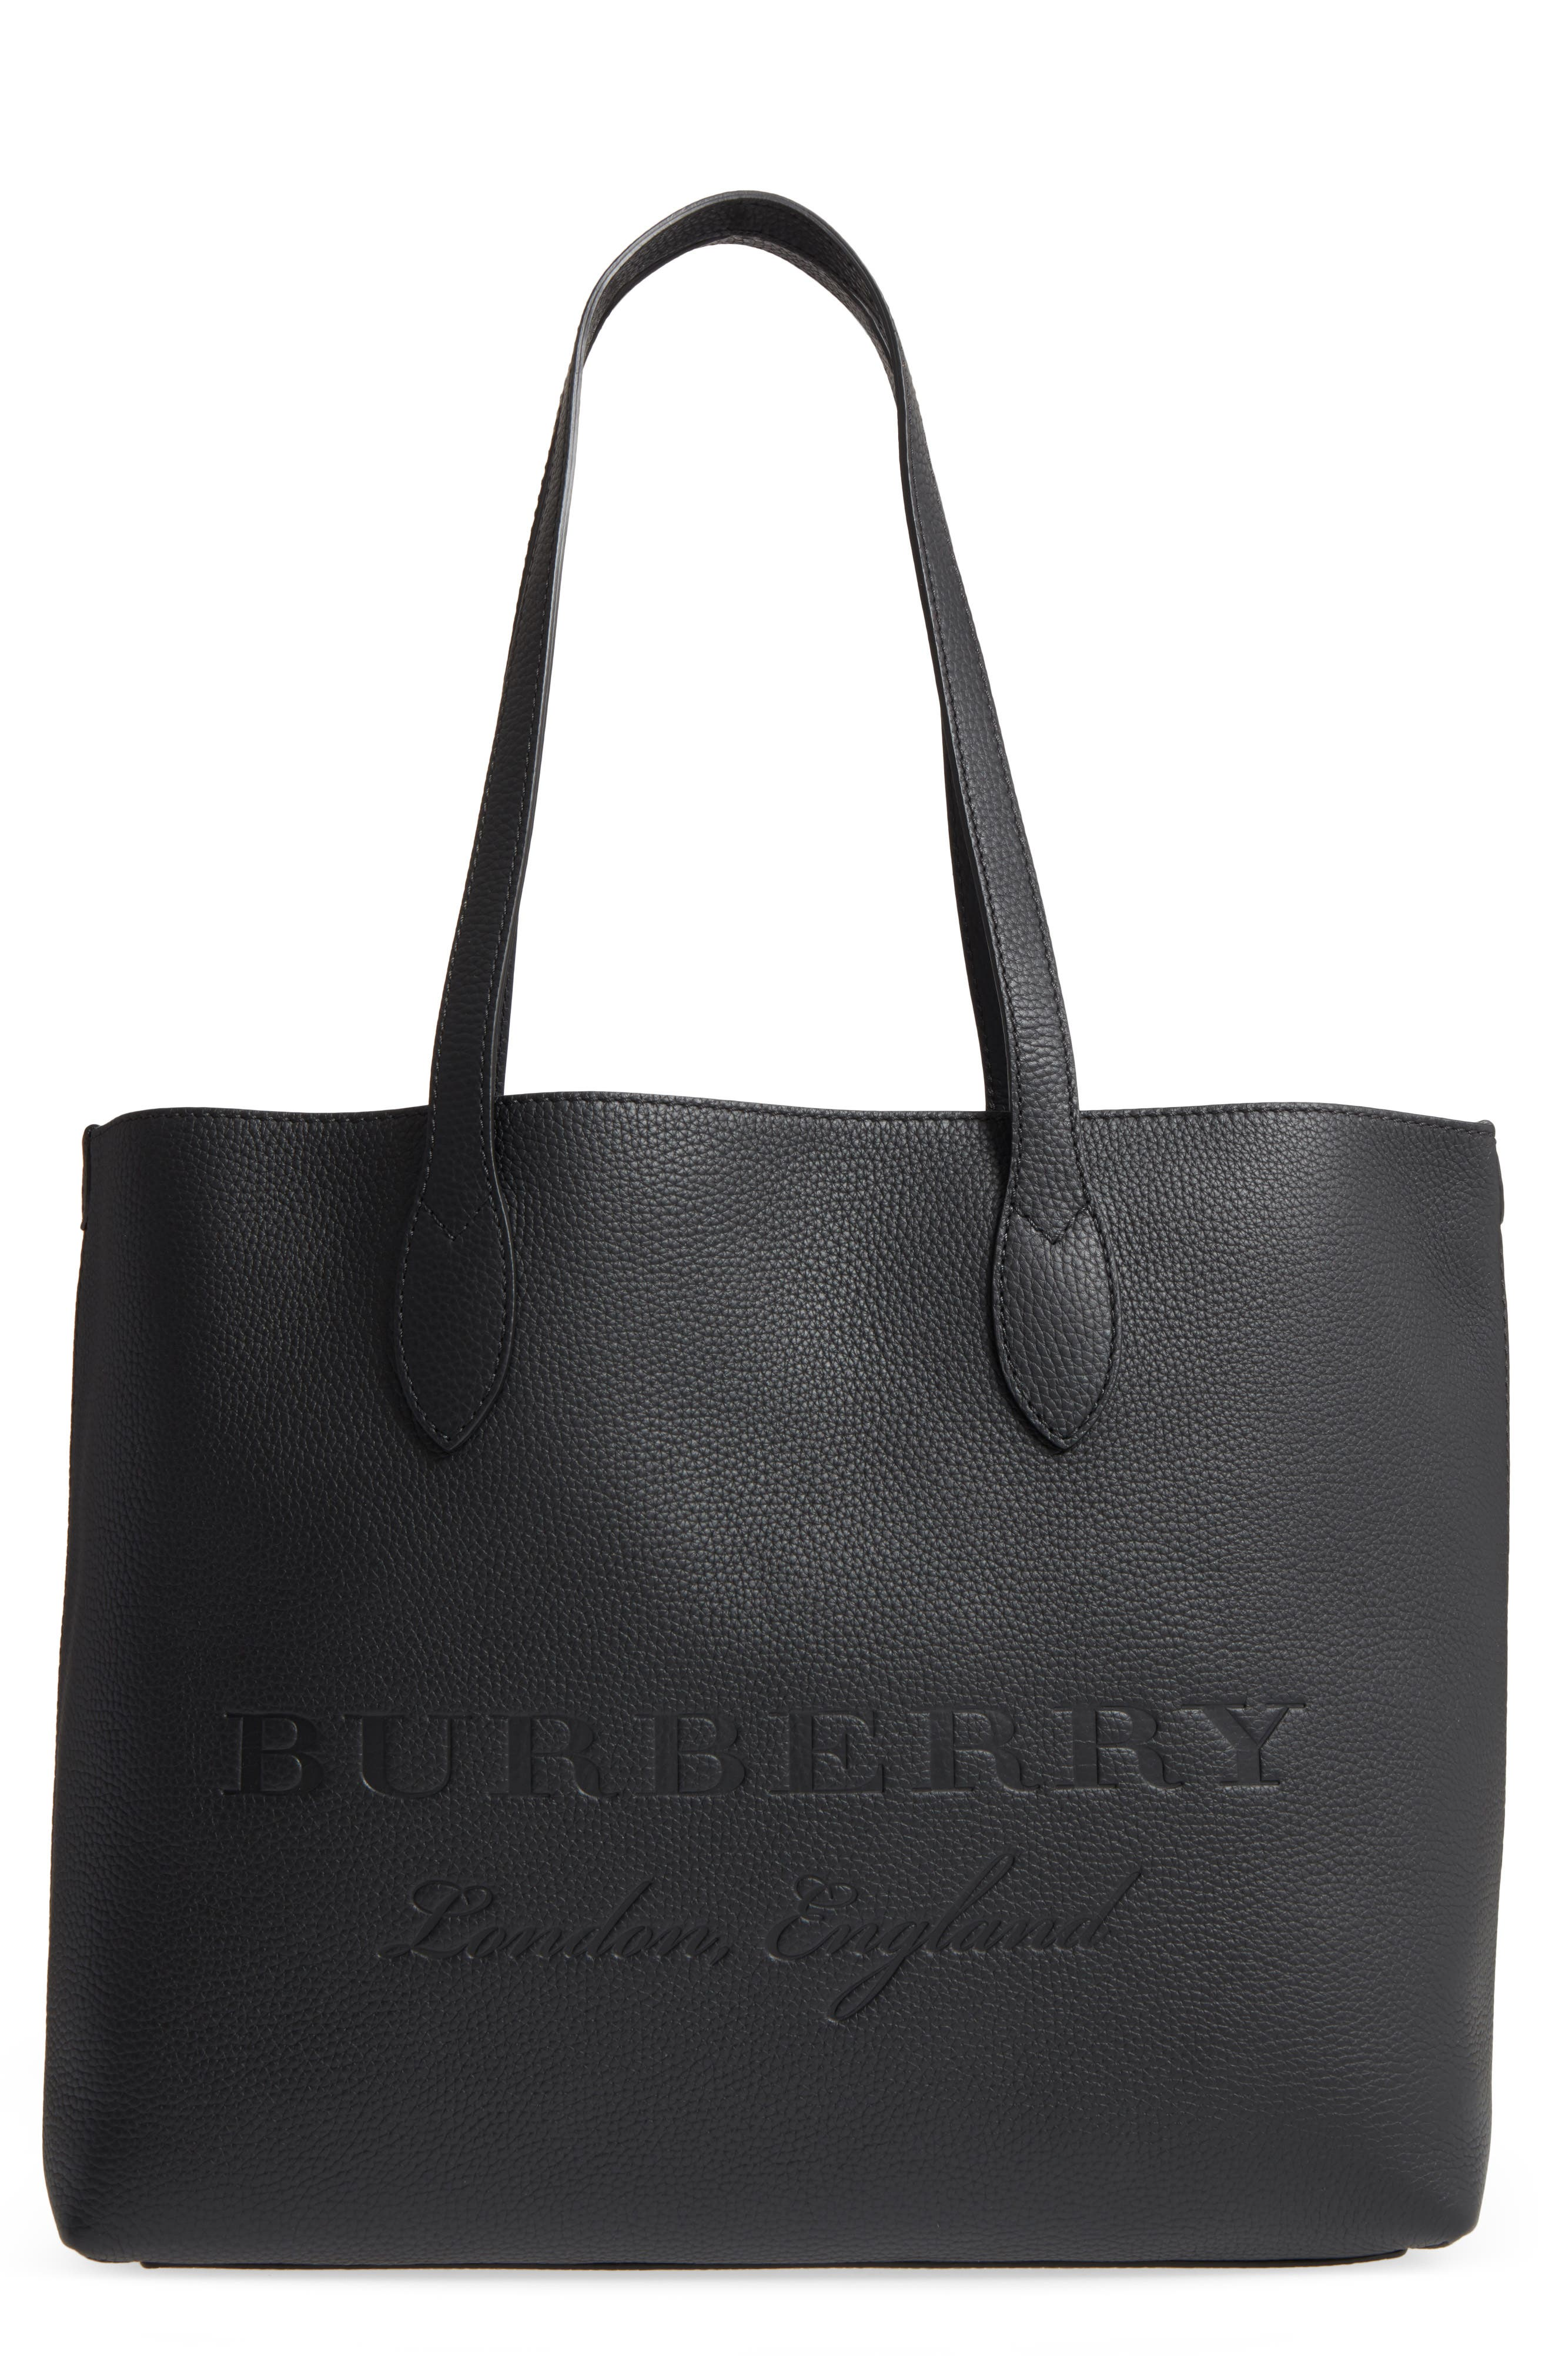 Alternate Image 1 Selected - Burberry Remington Leather Tote